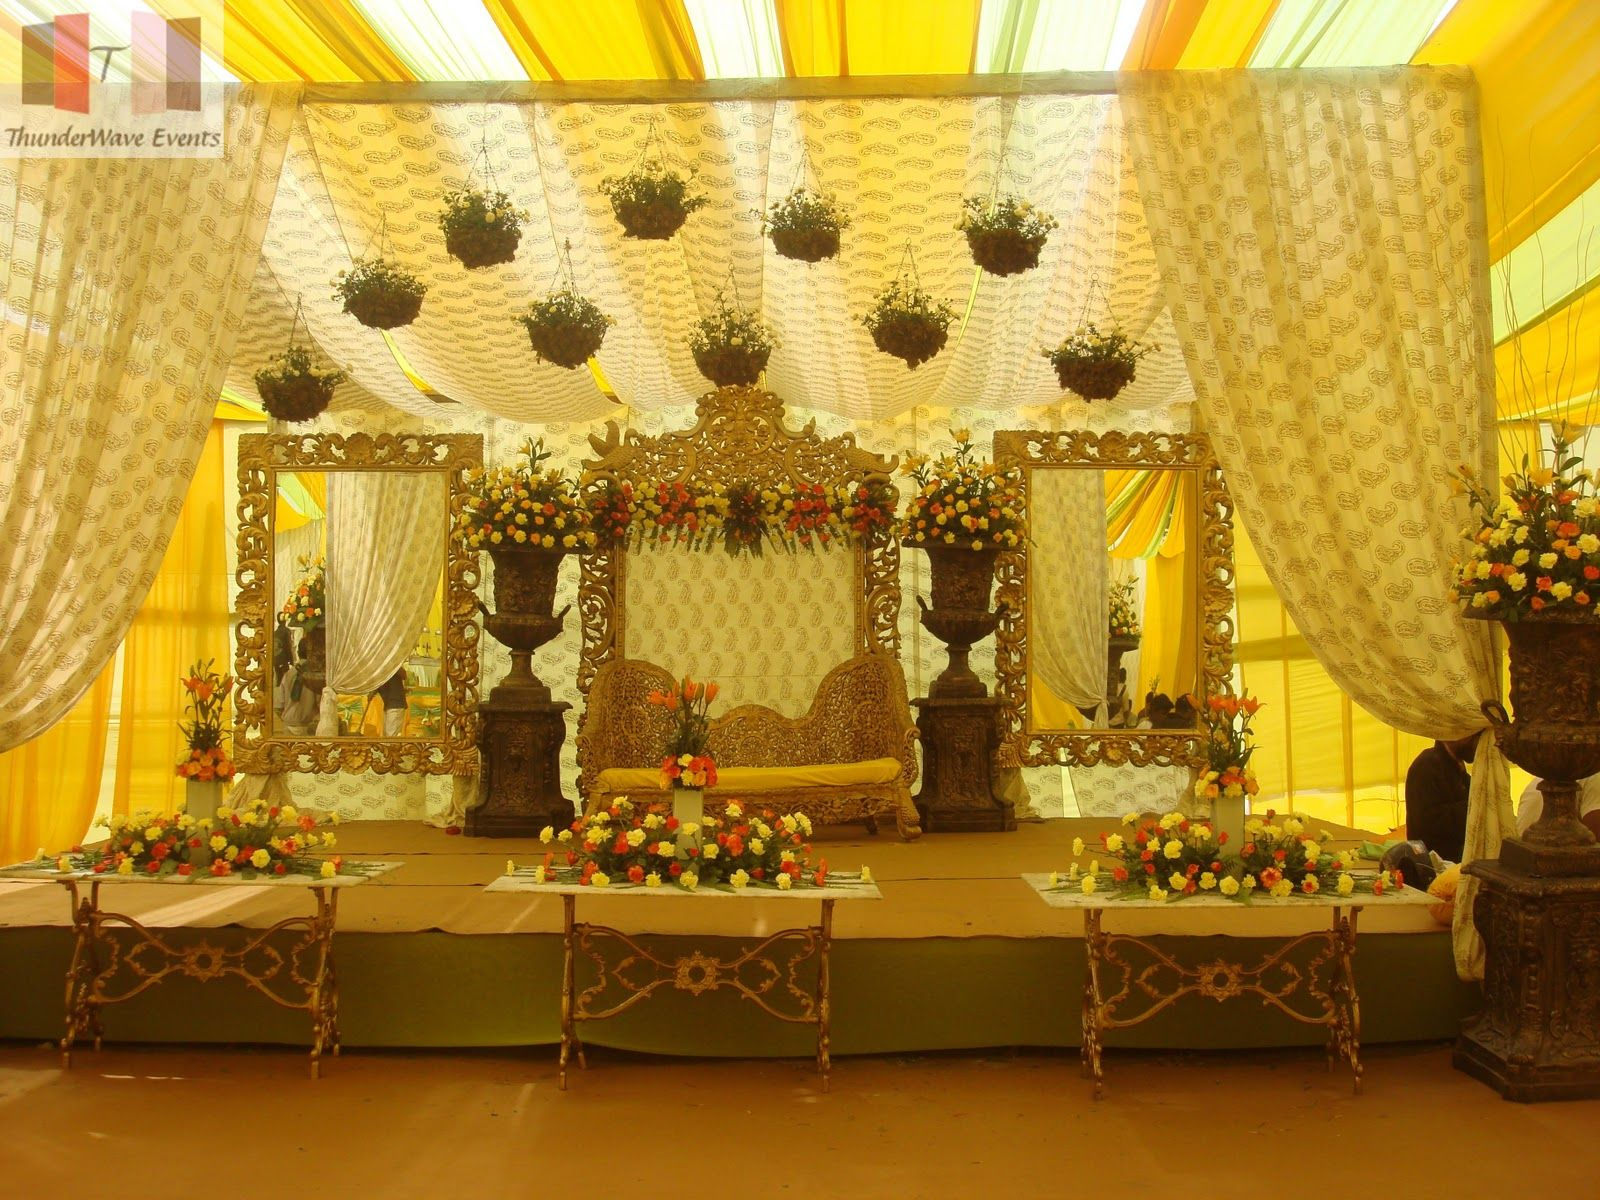 Wedding decoration stage ideas  A simple stage decor with yellow drapes gold seats and wait for